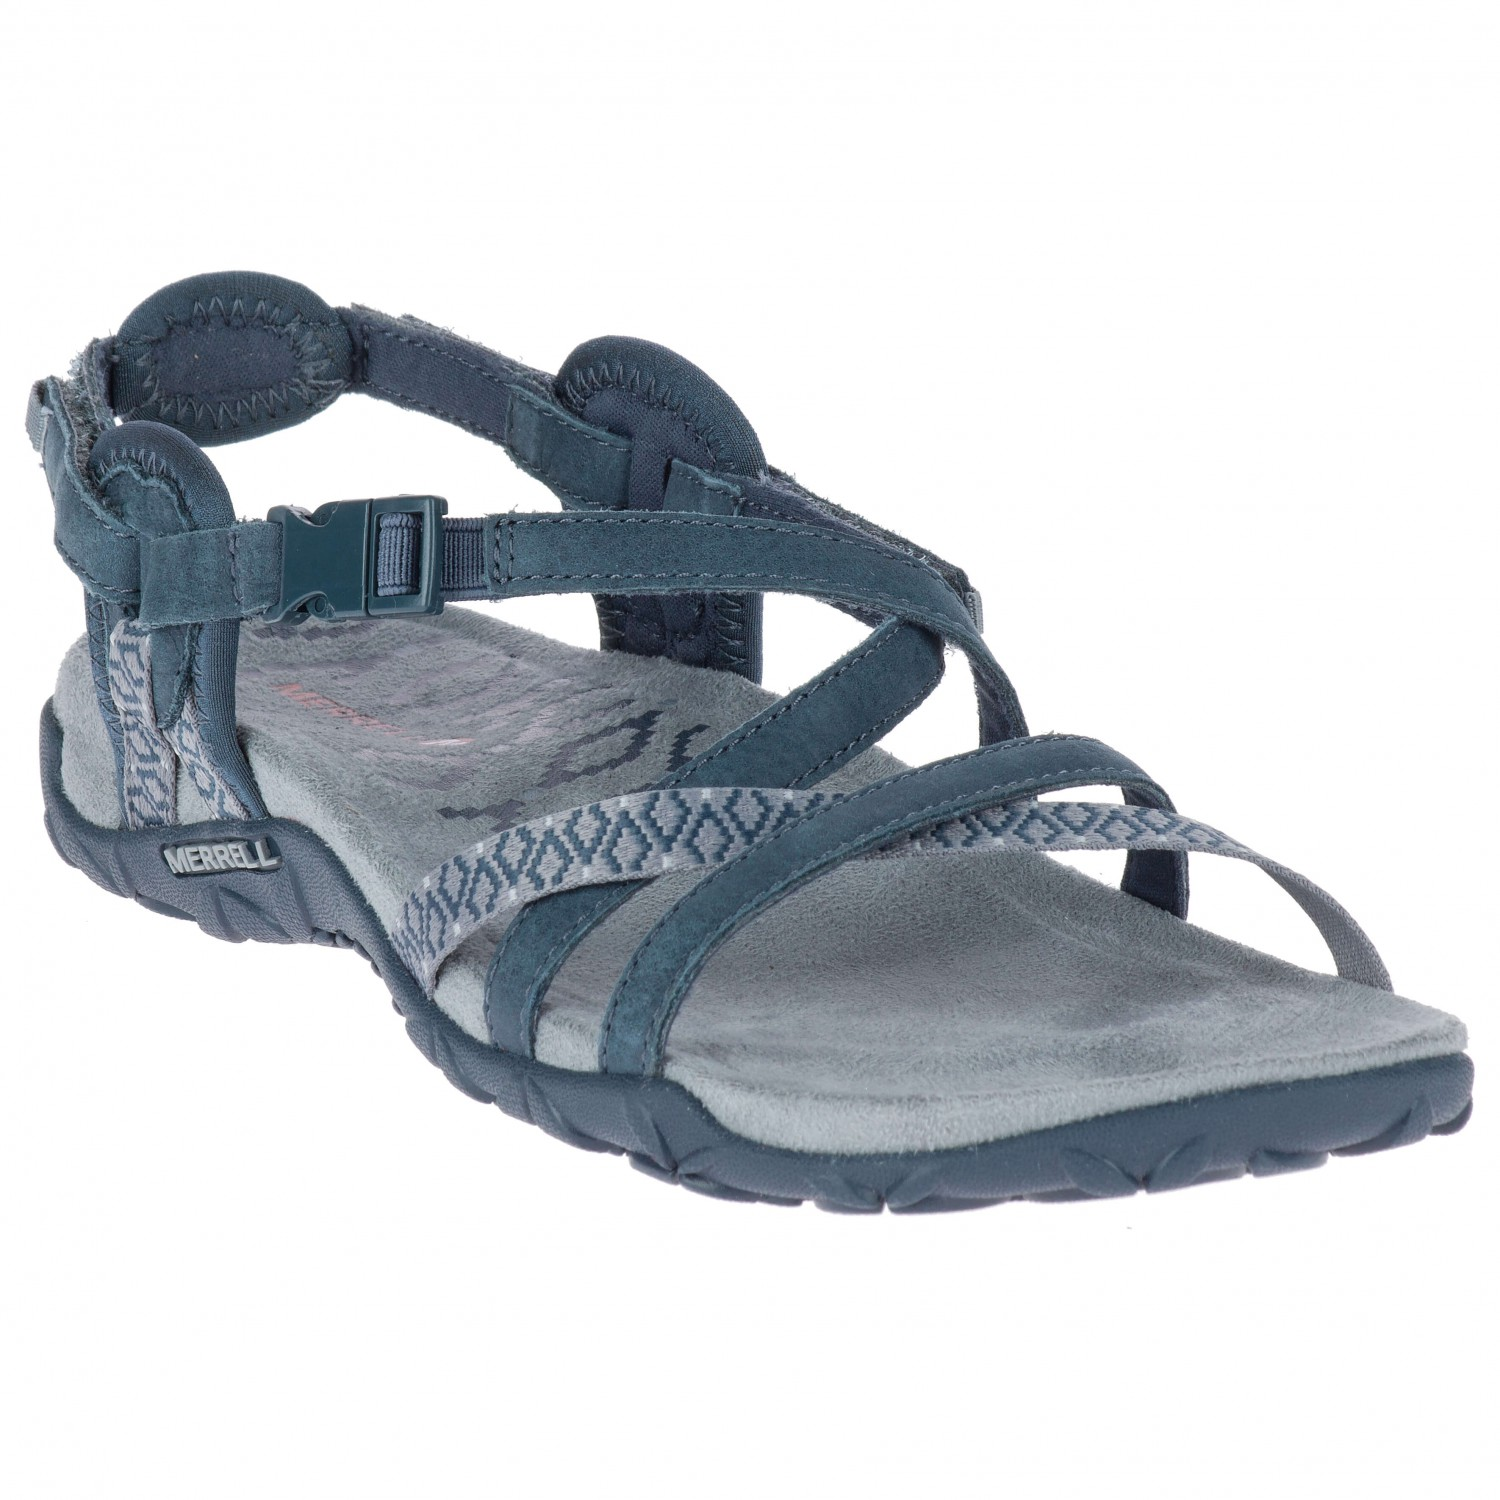 839dec1b505e Merrell - Women s Terran Lattice - Sandals